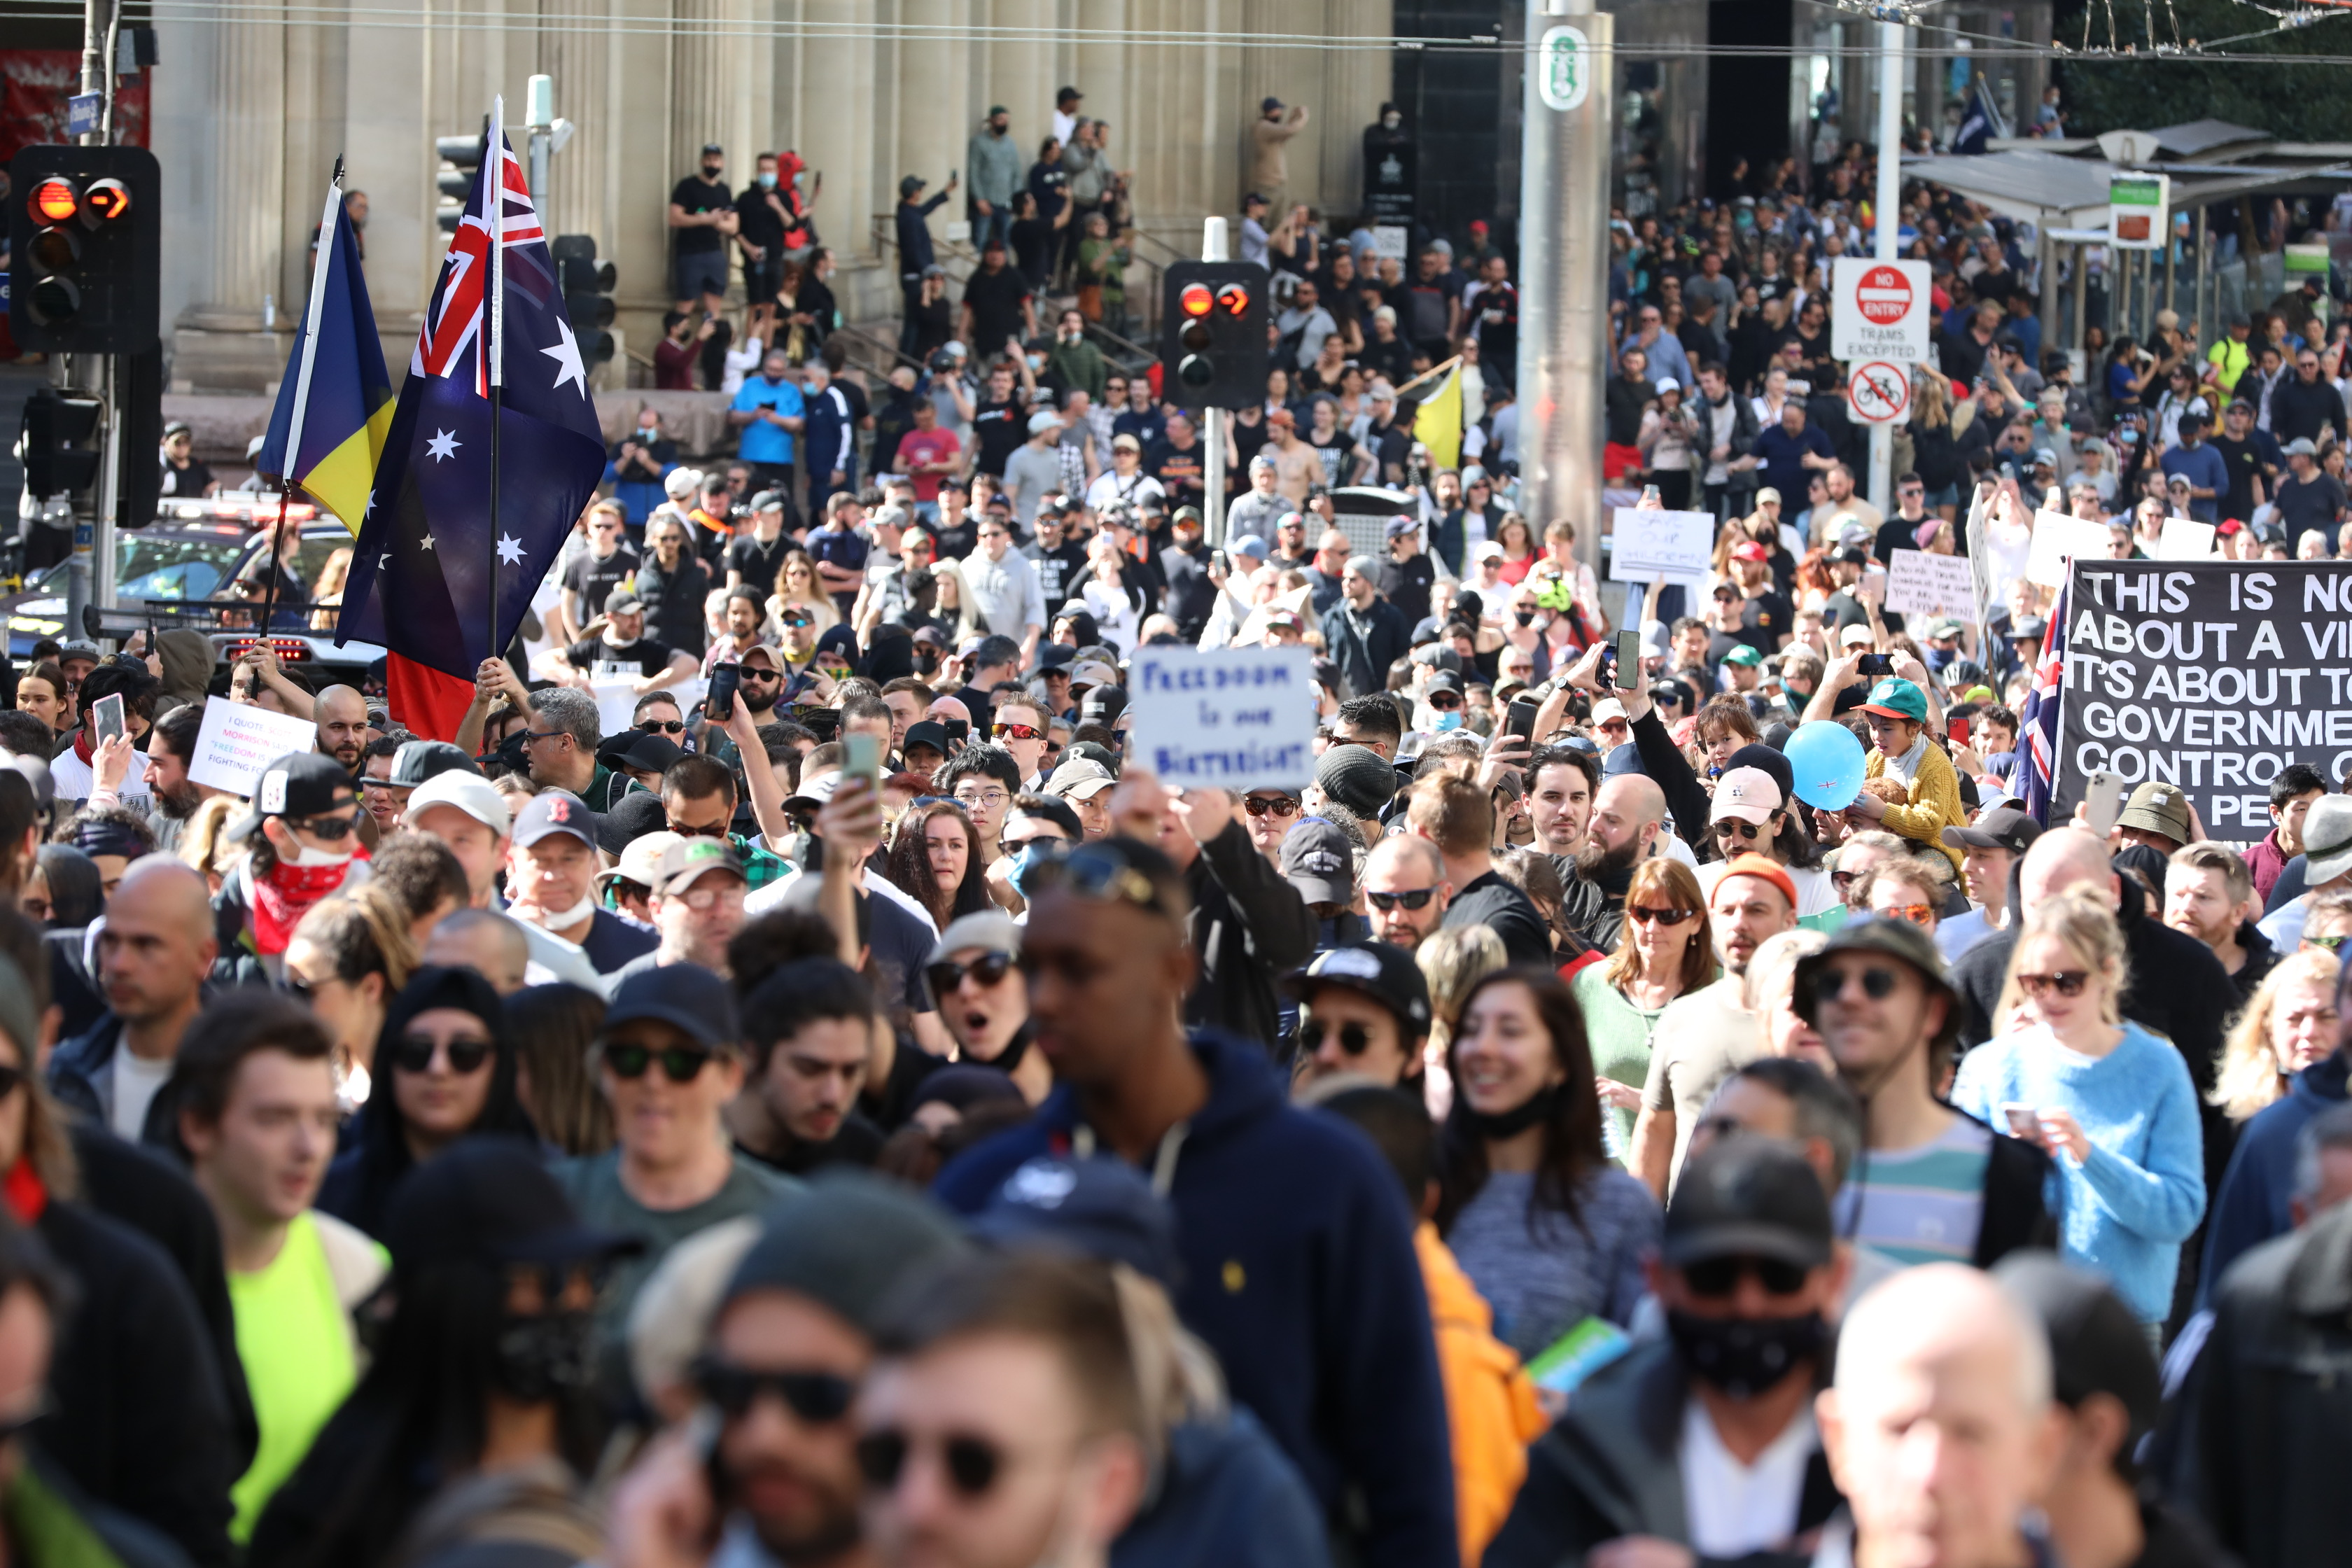 Thousands of people gather in Melbourne's CBD to protect lockdown restrictions on August 21, 2021 in Melbourne, Australia. Anti-lockdown protesters gathered despite current COVID-19 restrictions prohibiting outdoor gatherings. Lockdown restrictions are currently in place across Melbourne as Victoria continues to record new cases of the highly infectious COVID-19 Delta variant. A curfew is also now in place from 9 pm to 5 am each night across the metropolitan area. The restrictions are set to remain in place until 11.59 pm on Thursday, 2 September.